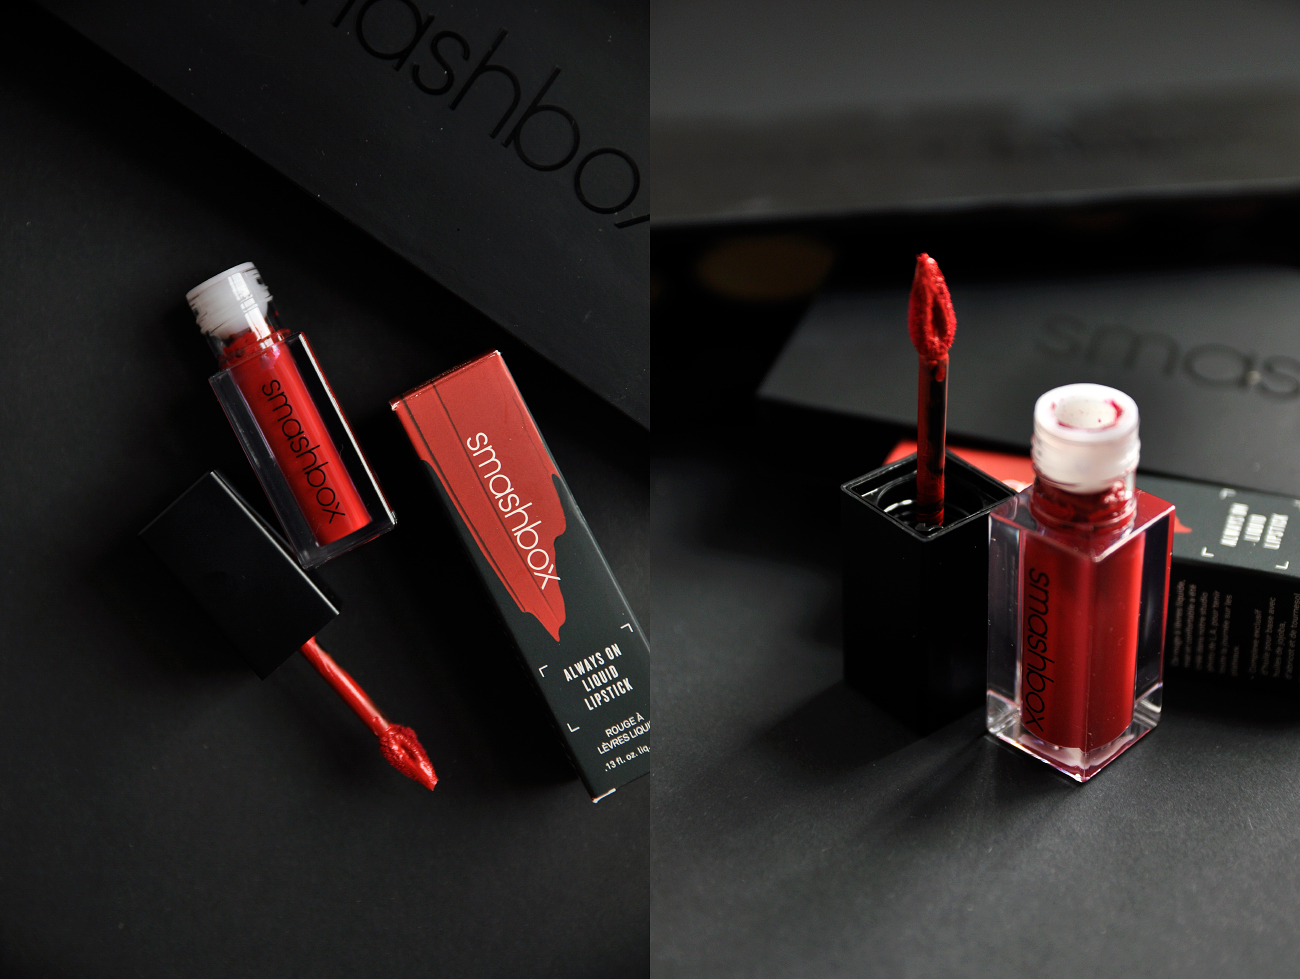 Smashbox-Always-On-Liquid-Lipstick2